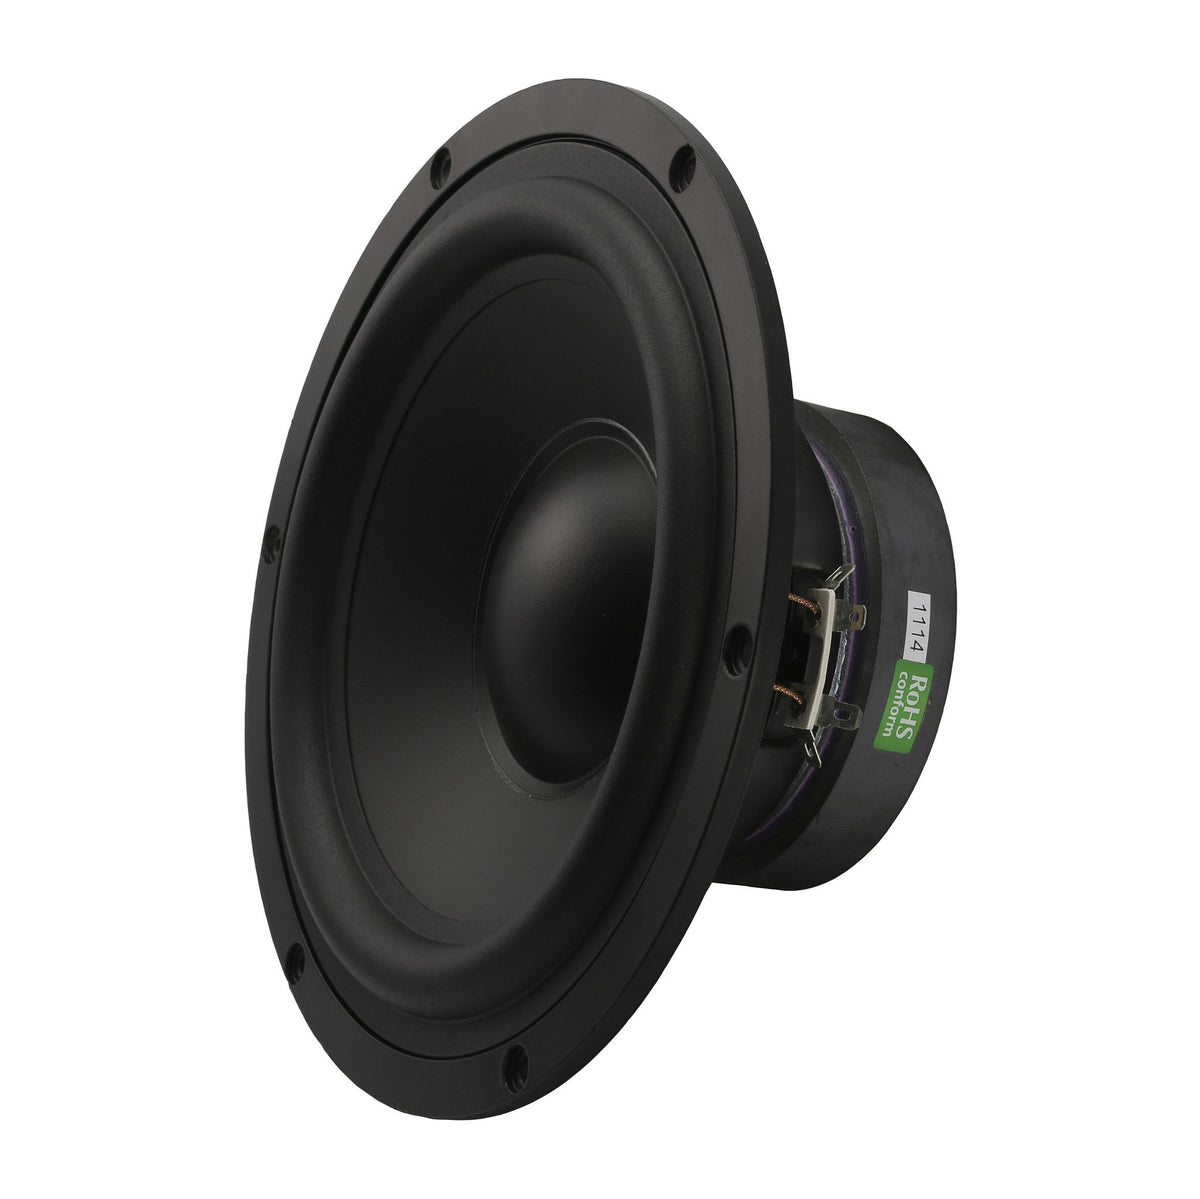 Monacor SPH-8M Bass / Mid speaker - Willys-Hifi Ltd